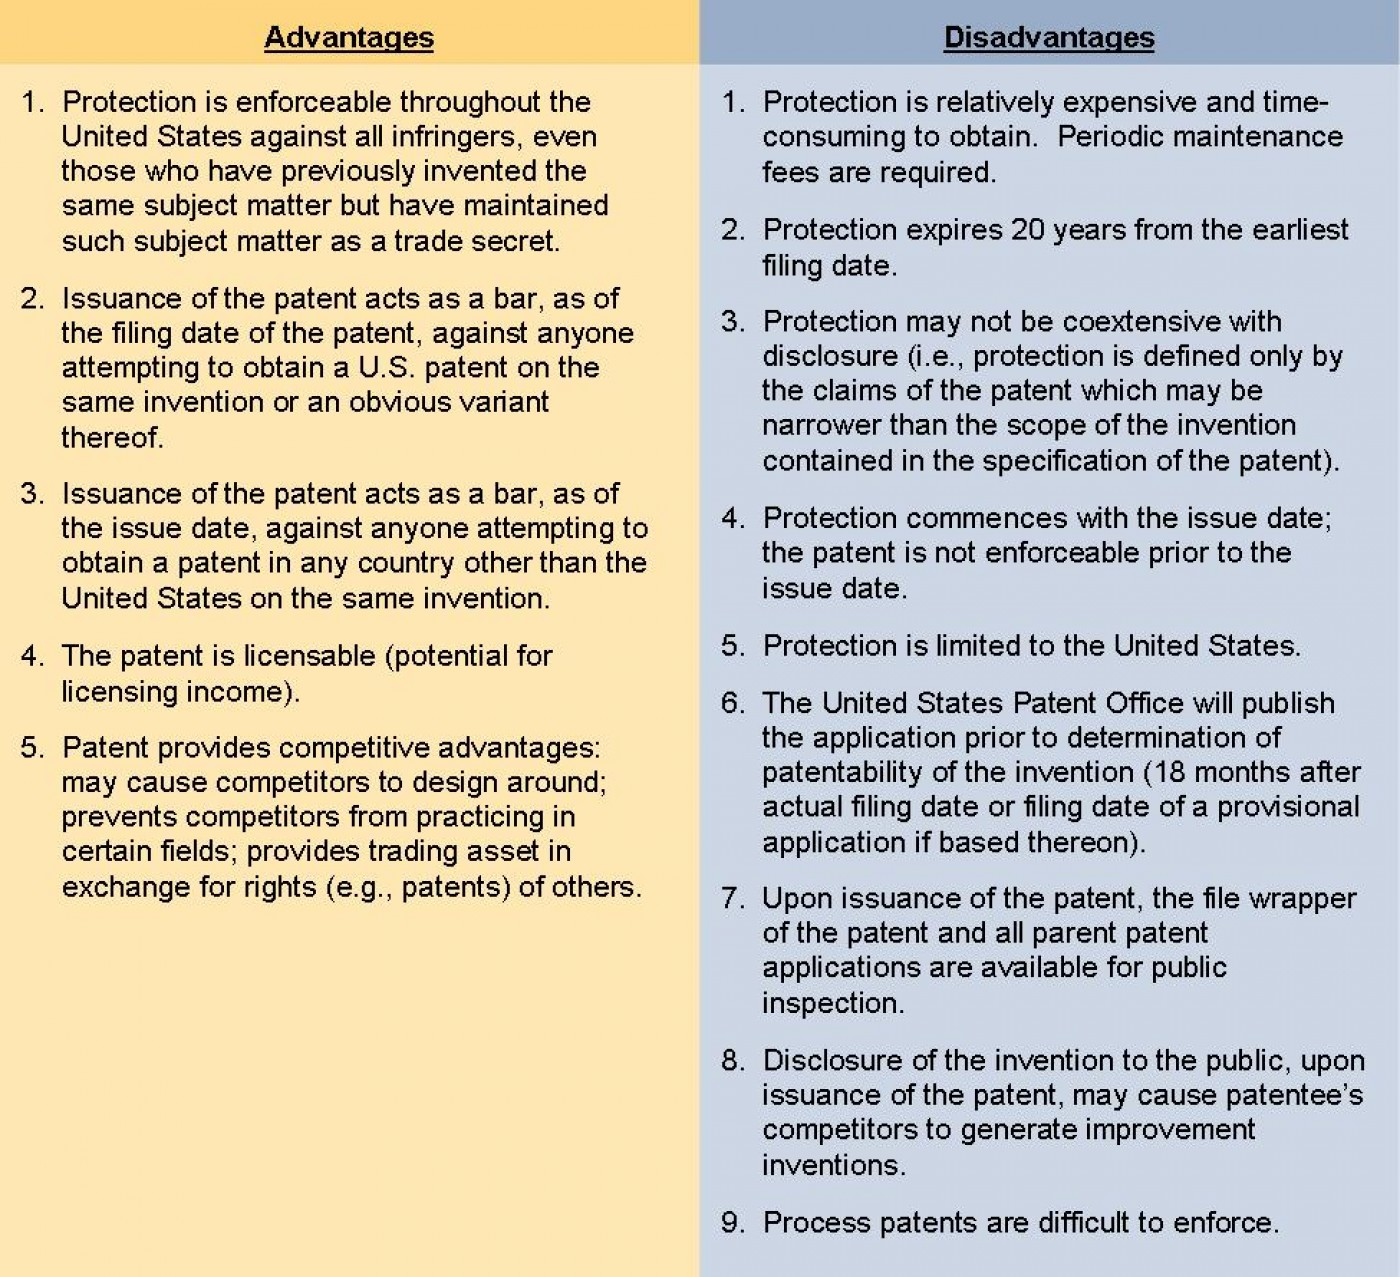 027 News87pic2 Advantage And Disadvantage Of Science Essay Shocking Advantages Disadvantages In Tamil Pdf Hindi 1400